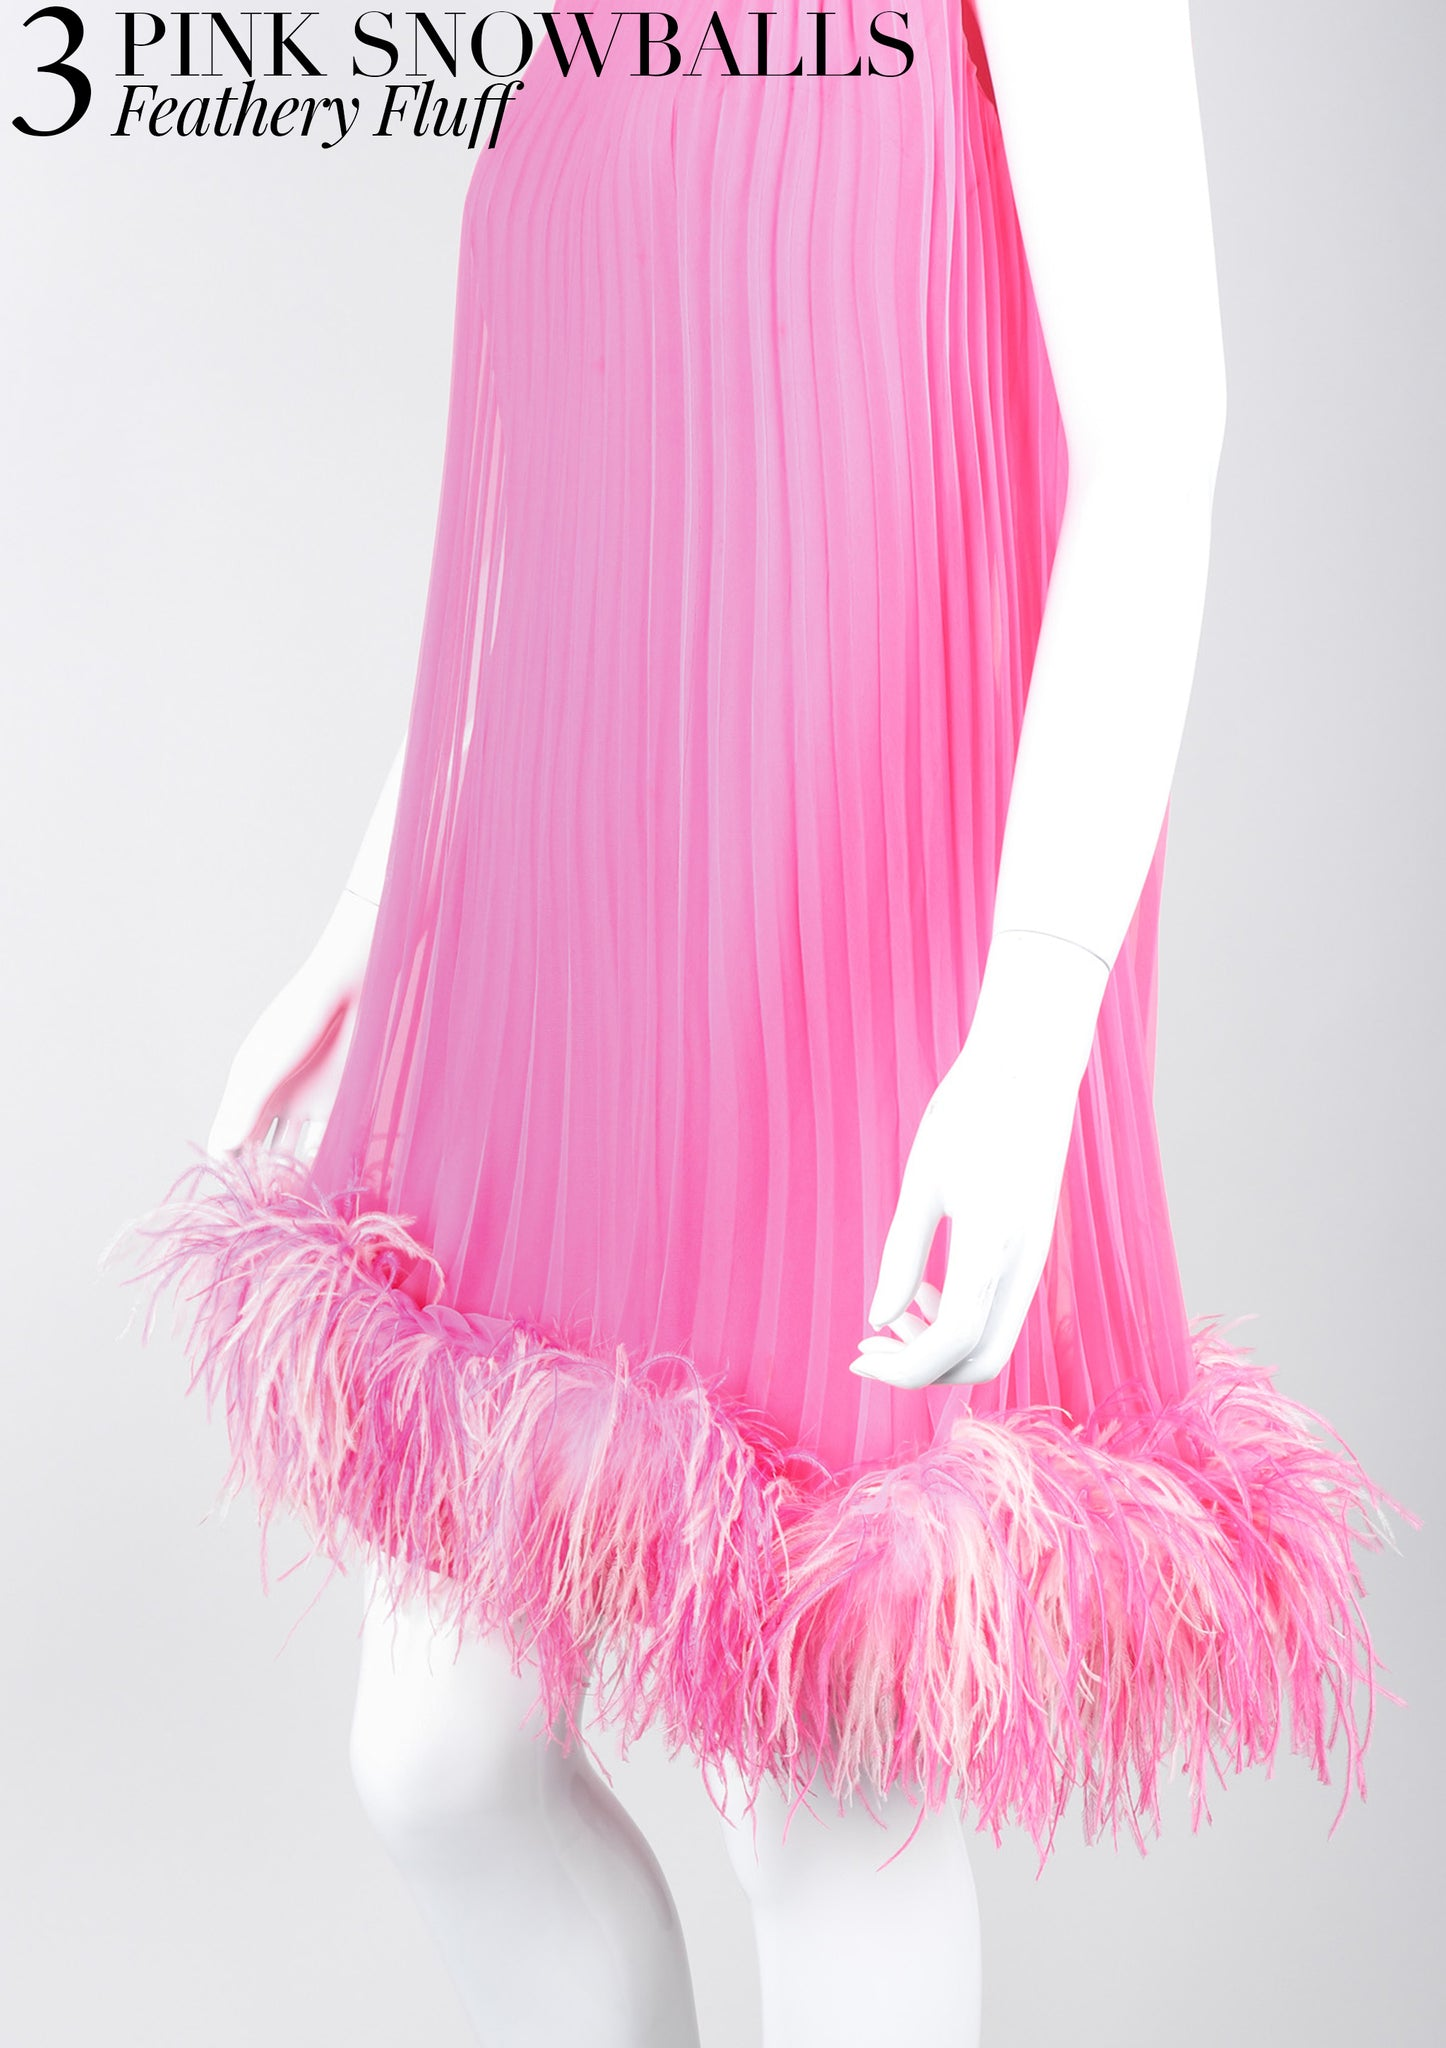 RECESS Los Angeles Vintage Dress Code Ice Cream Dream Pink Snowball Lee Jordan Hot Pink Pleated Trapeze Dress